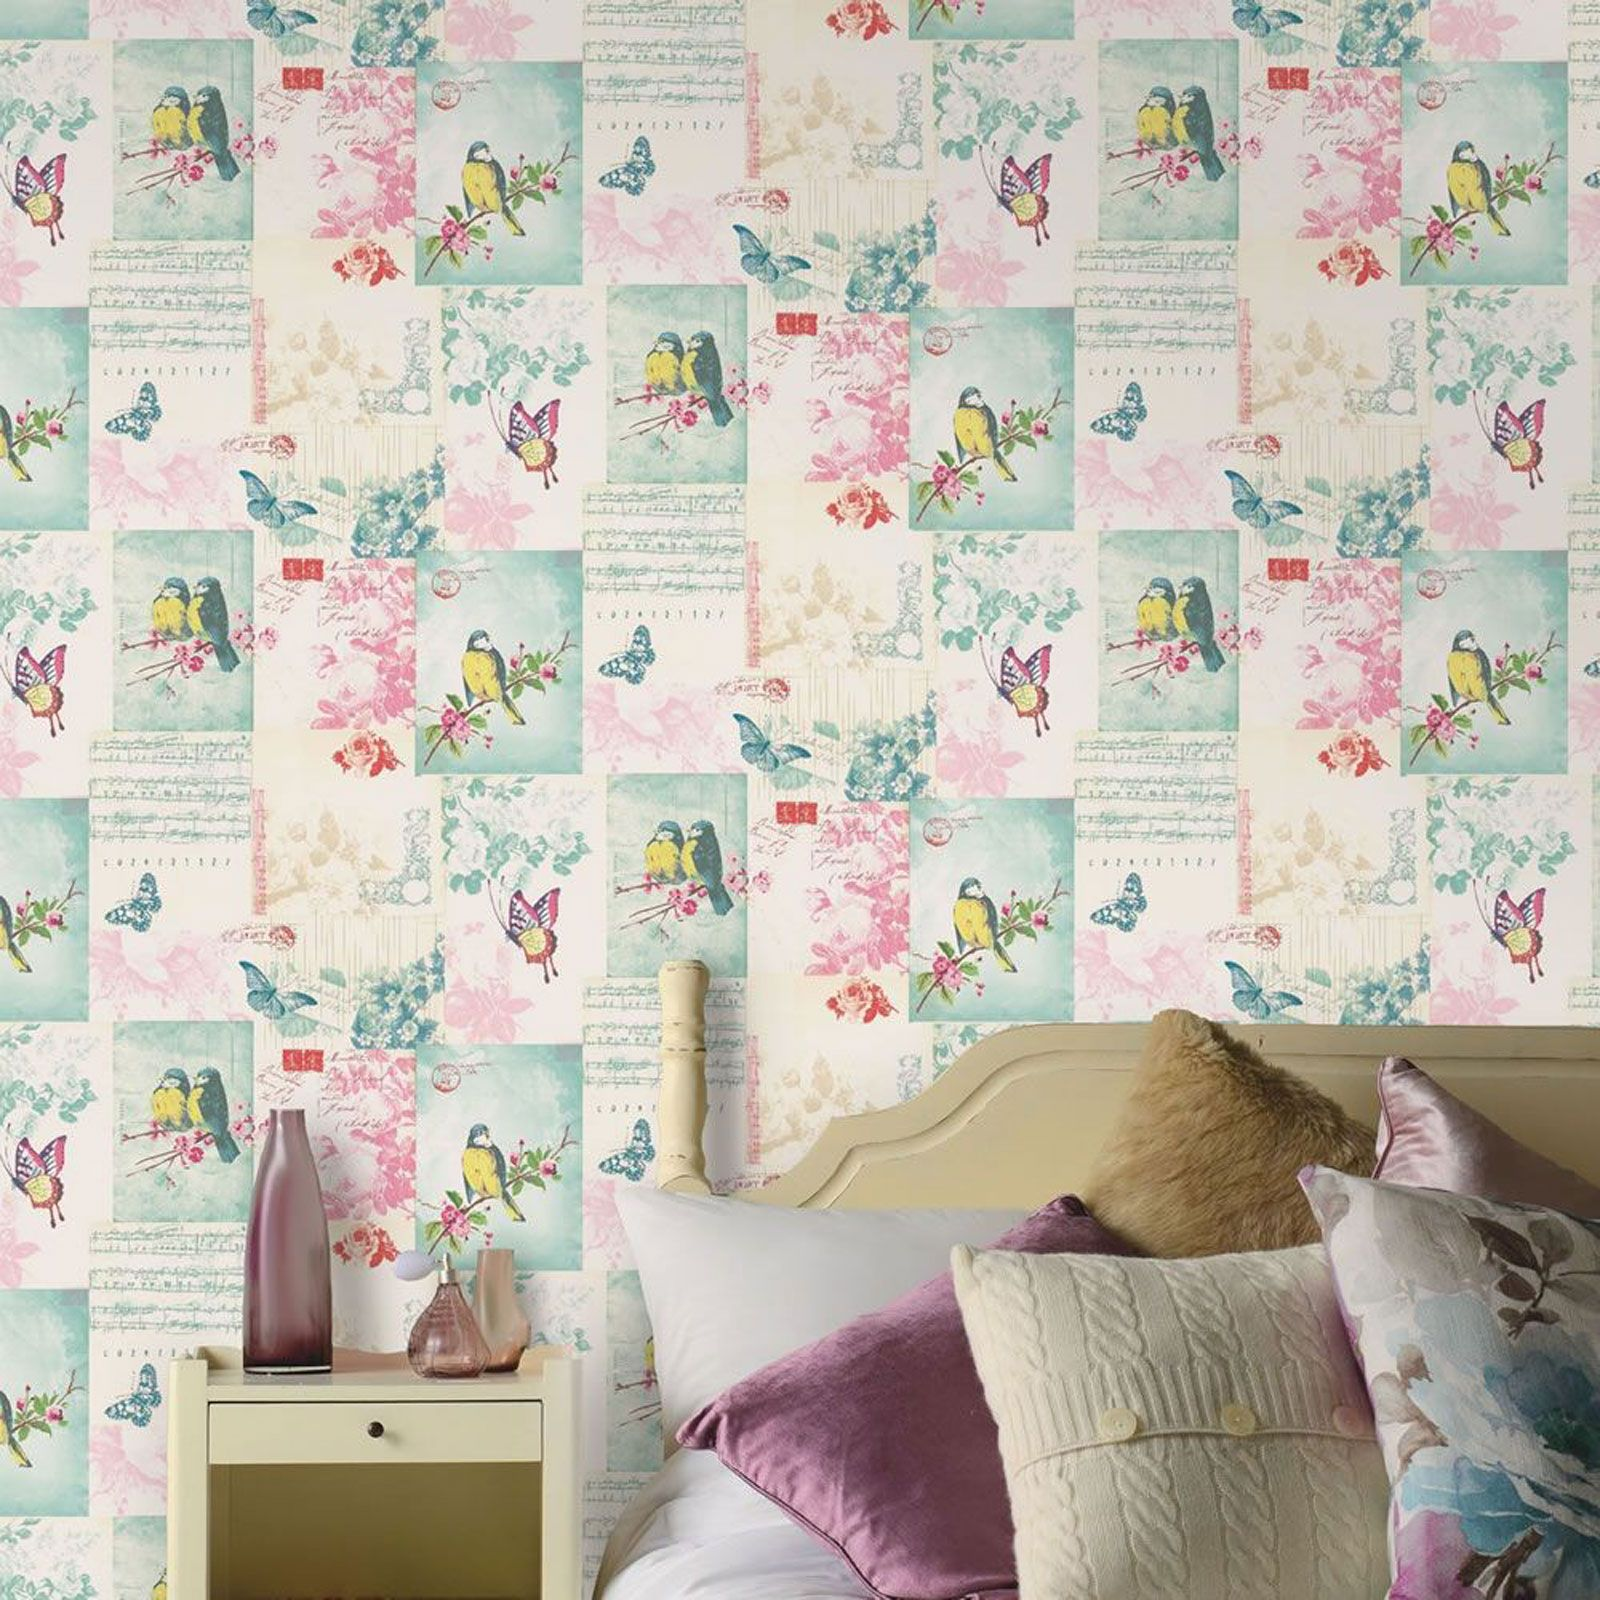 Wallpaper For Bedroom Walls Designs: BEAUTIFUL BIRDS THEMED WALLPAPERS IN VARIOUS DESIGNS